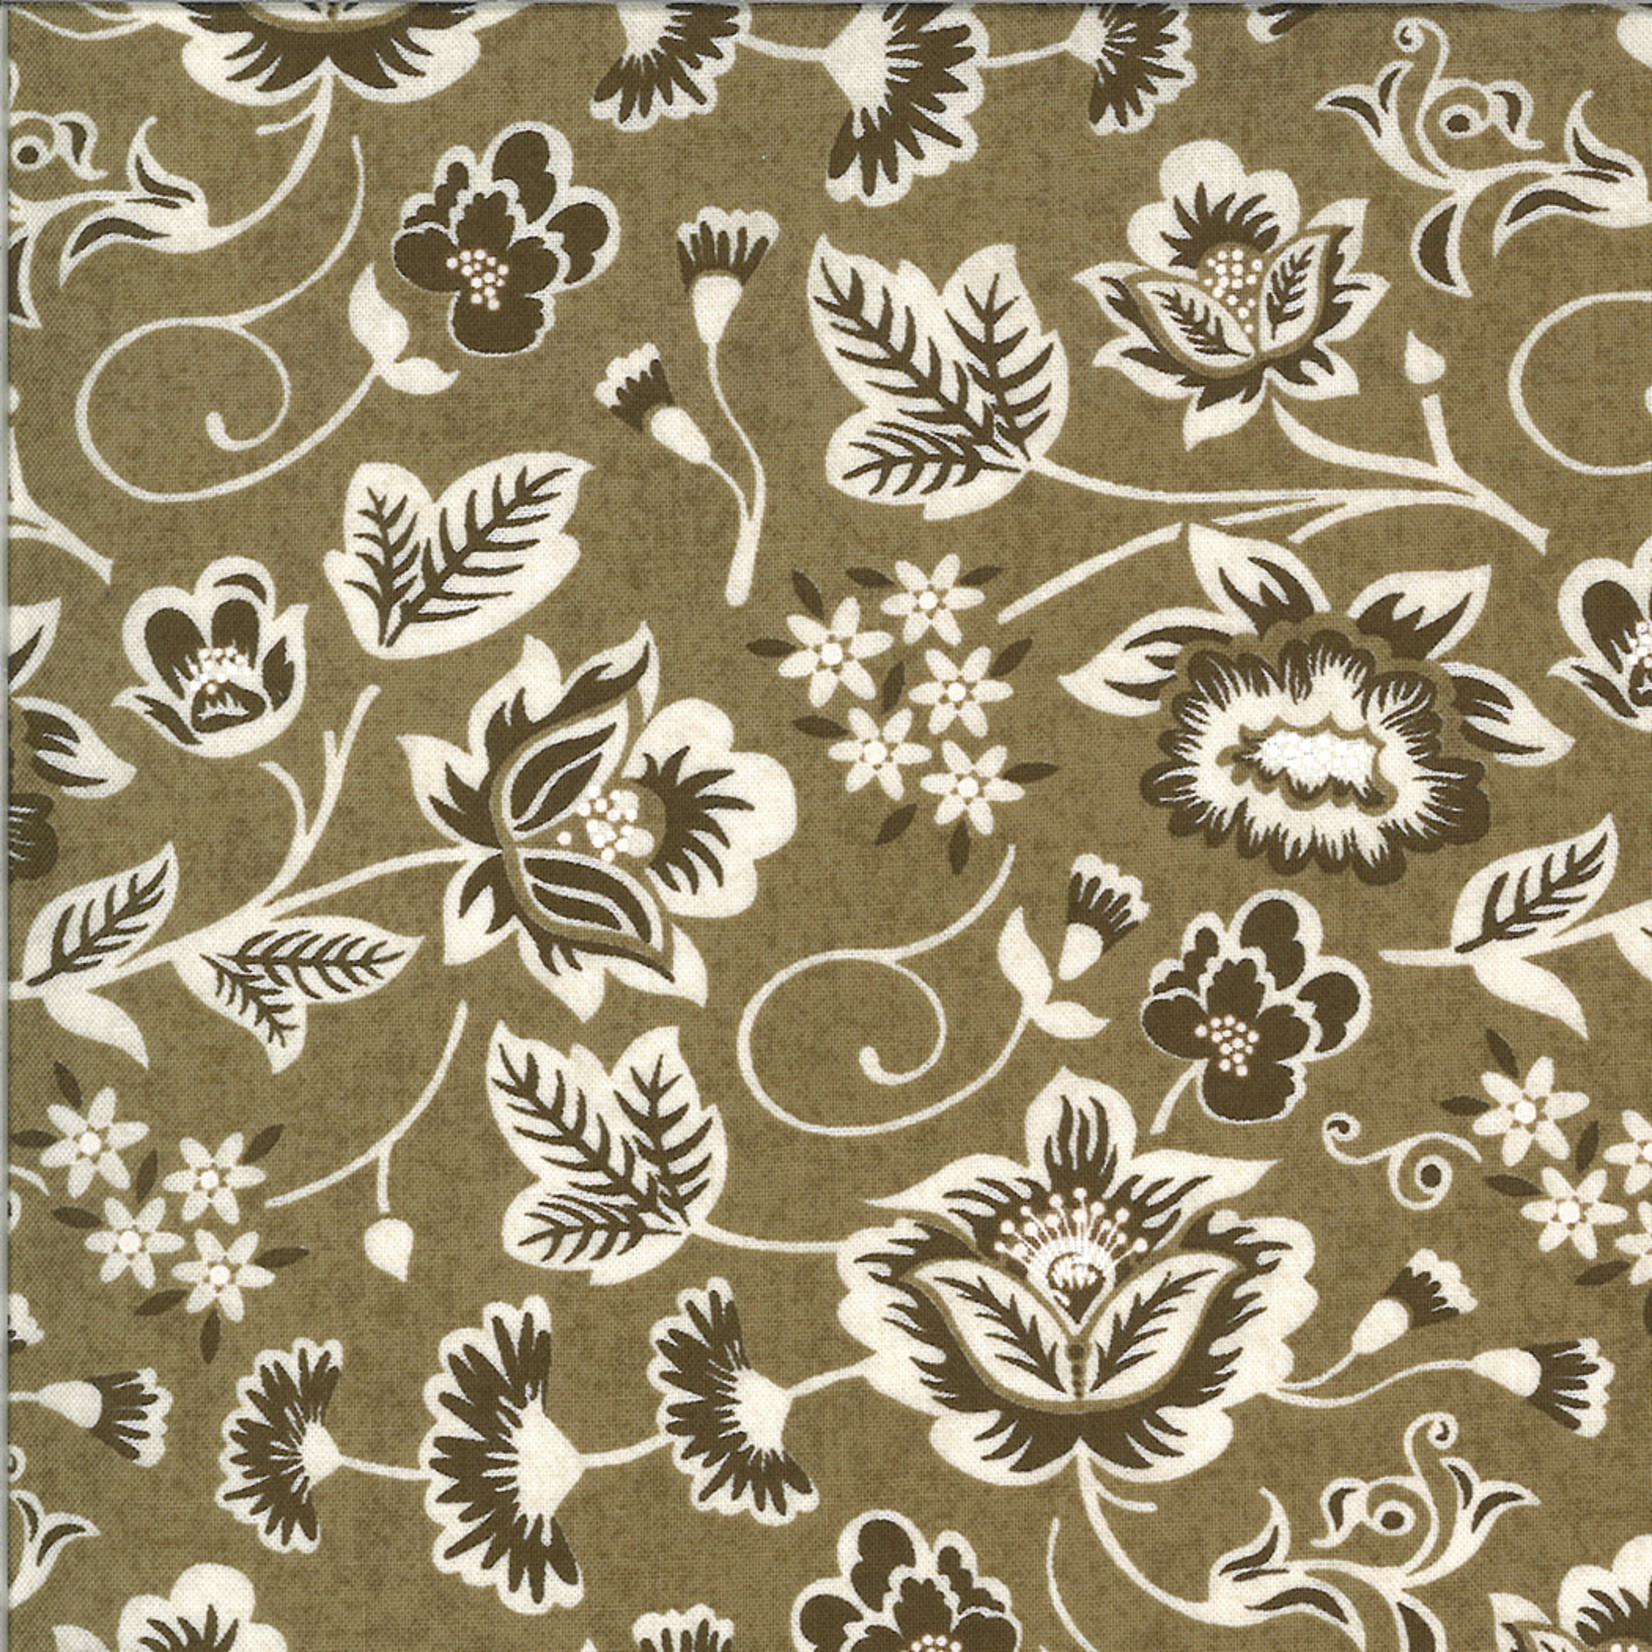 MODA Cider, Scroll Leaves and Flowers on Brown Golden Delicious Tart (30641 15) per cm or $20/m